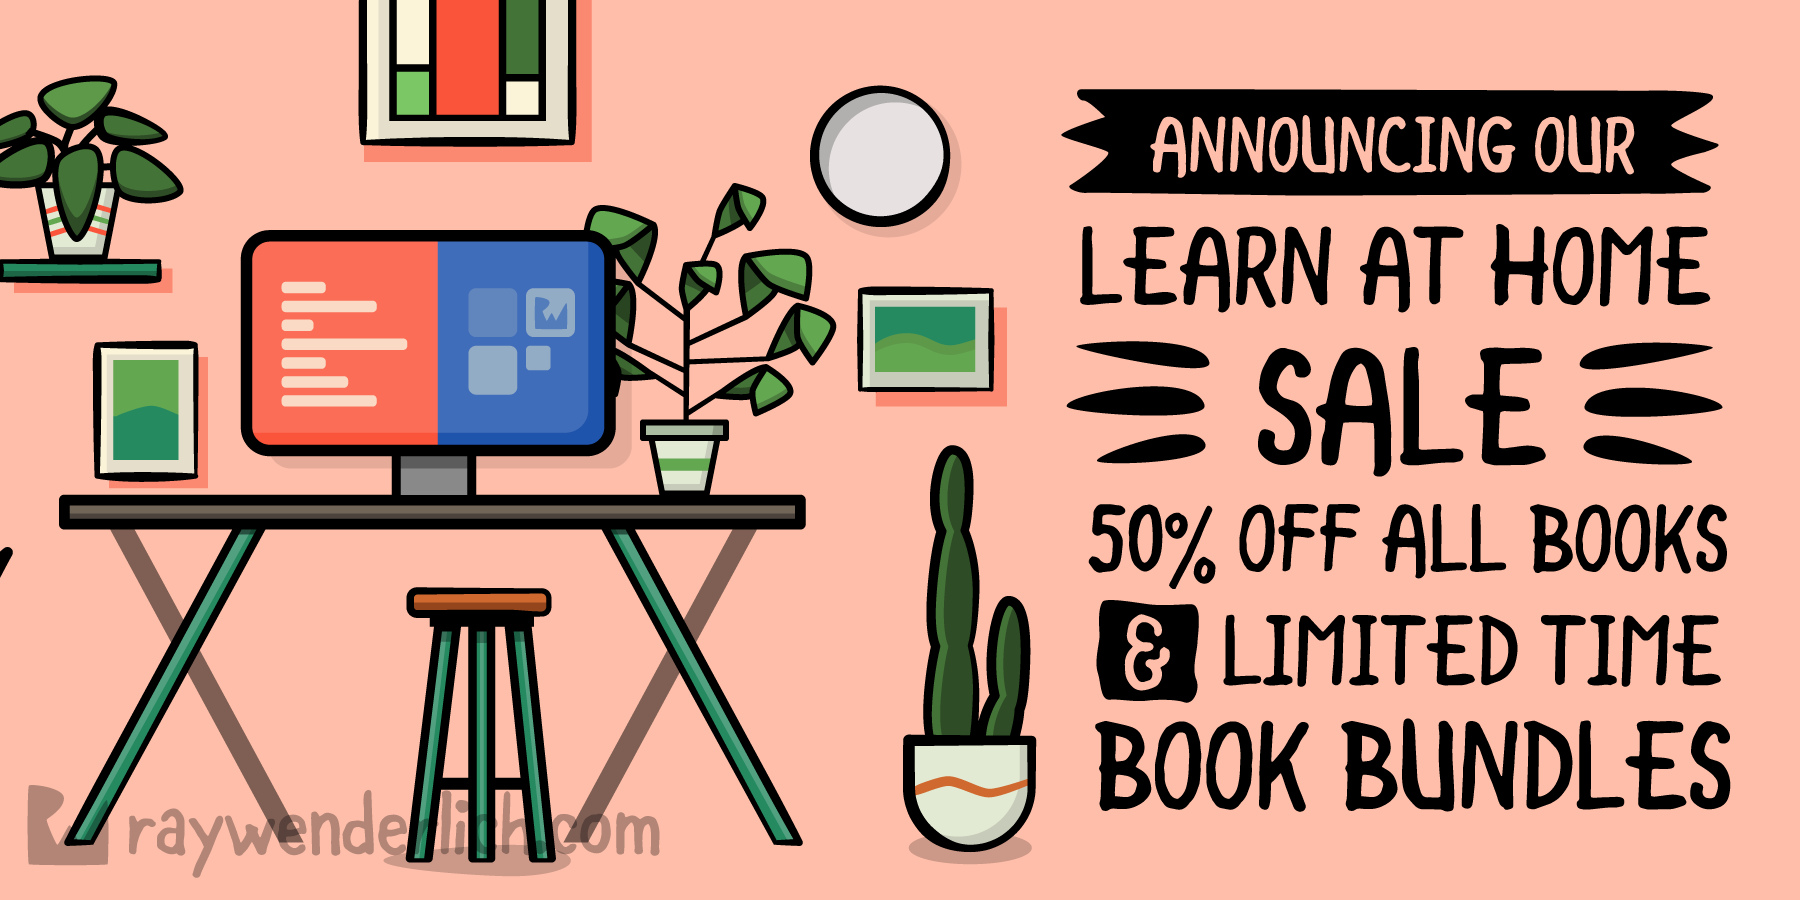 Announcing Our Learn At Home Sale! [FREE]